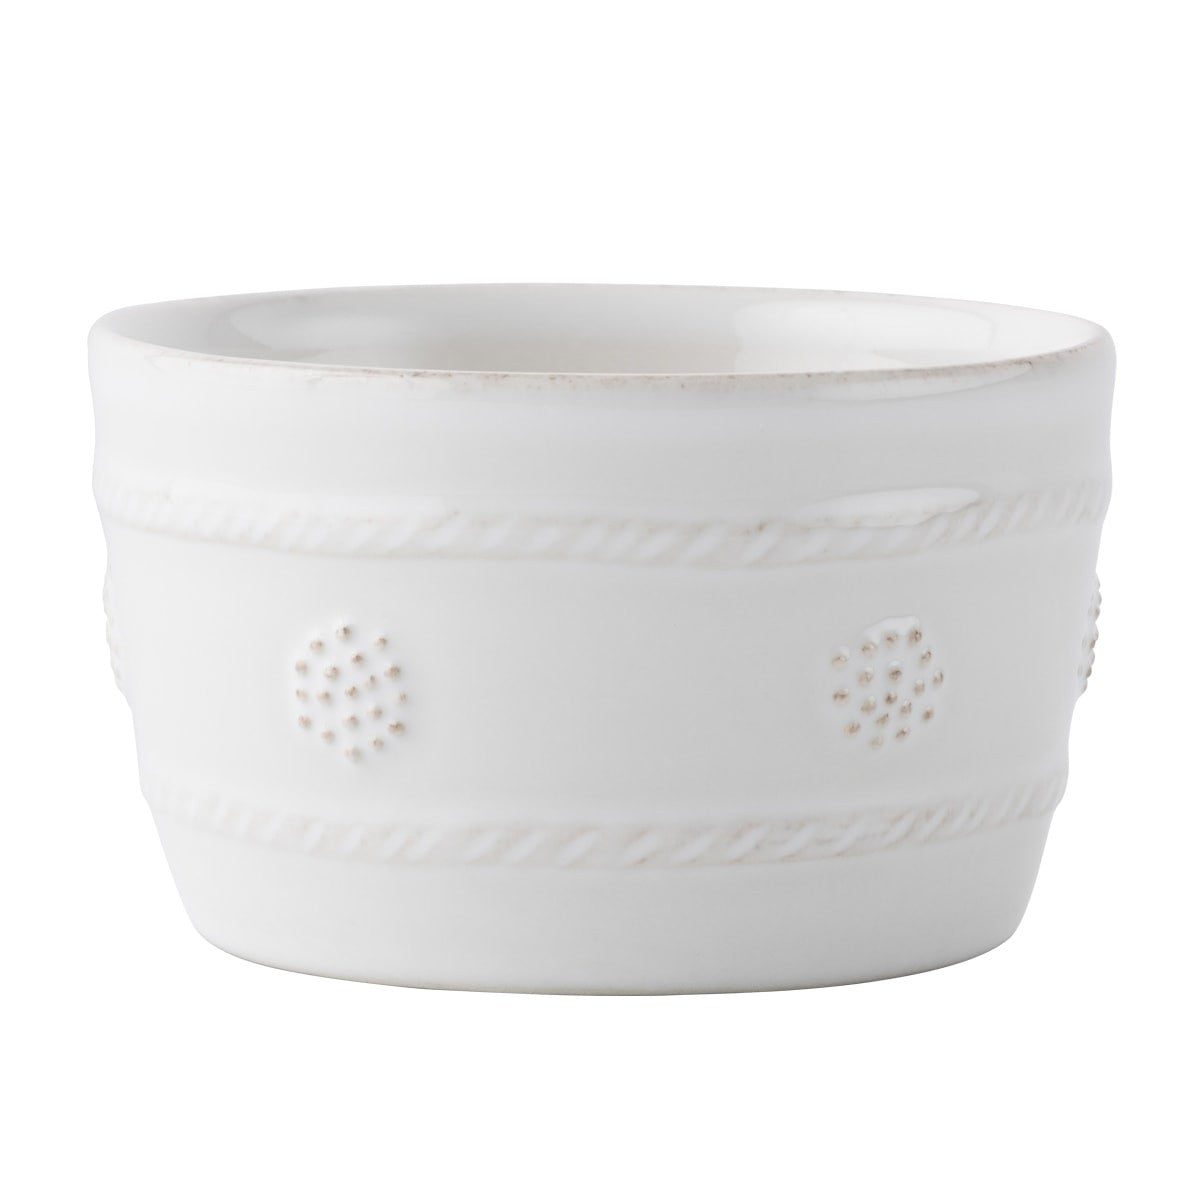 Juliska - Berry & Thread Whitewash Ramekin